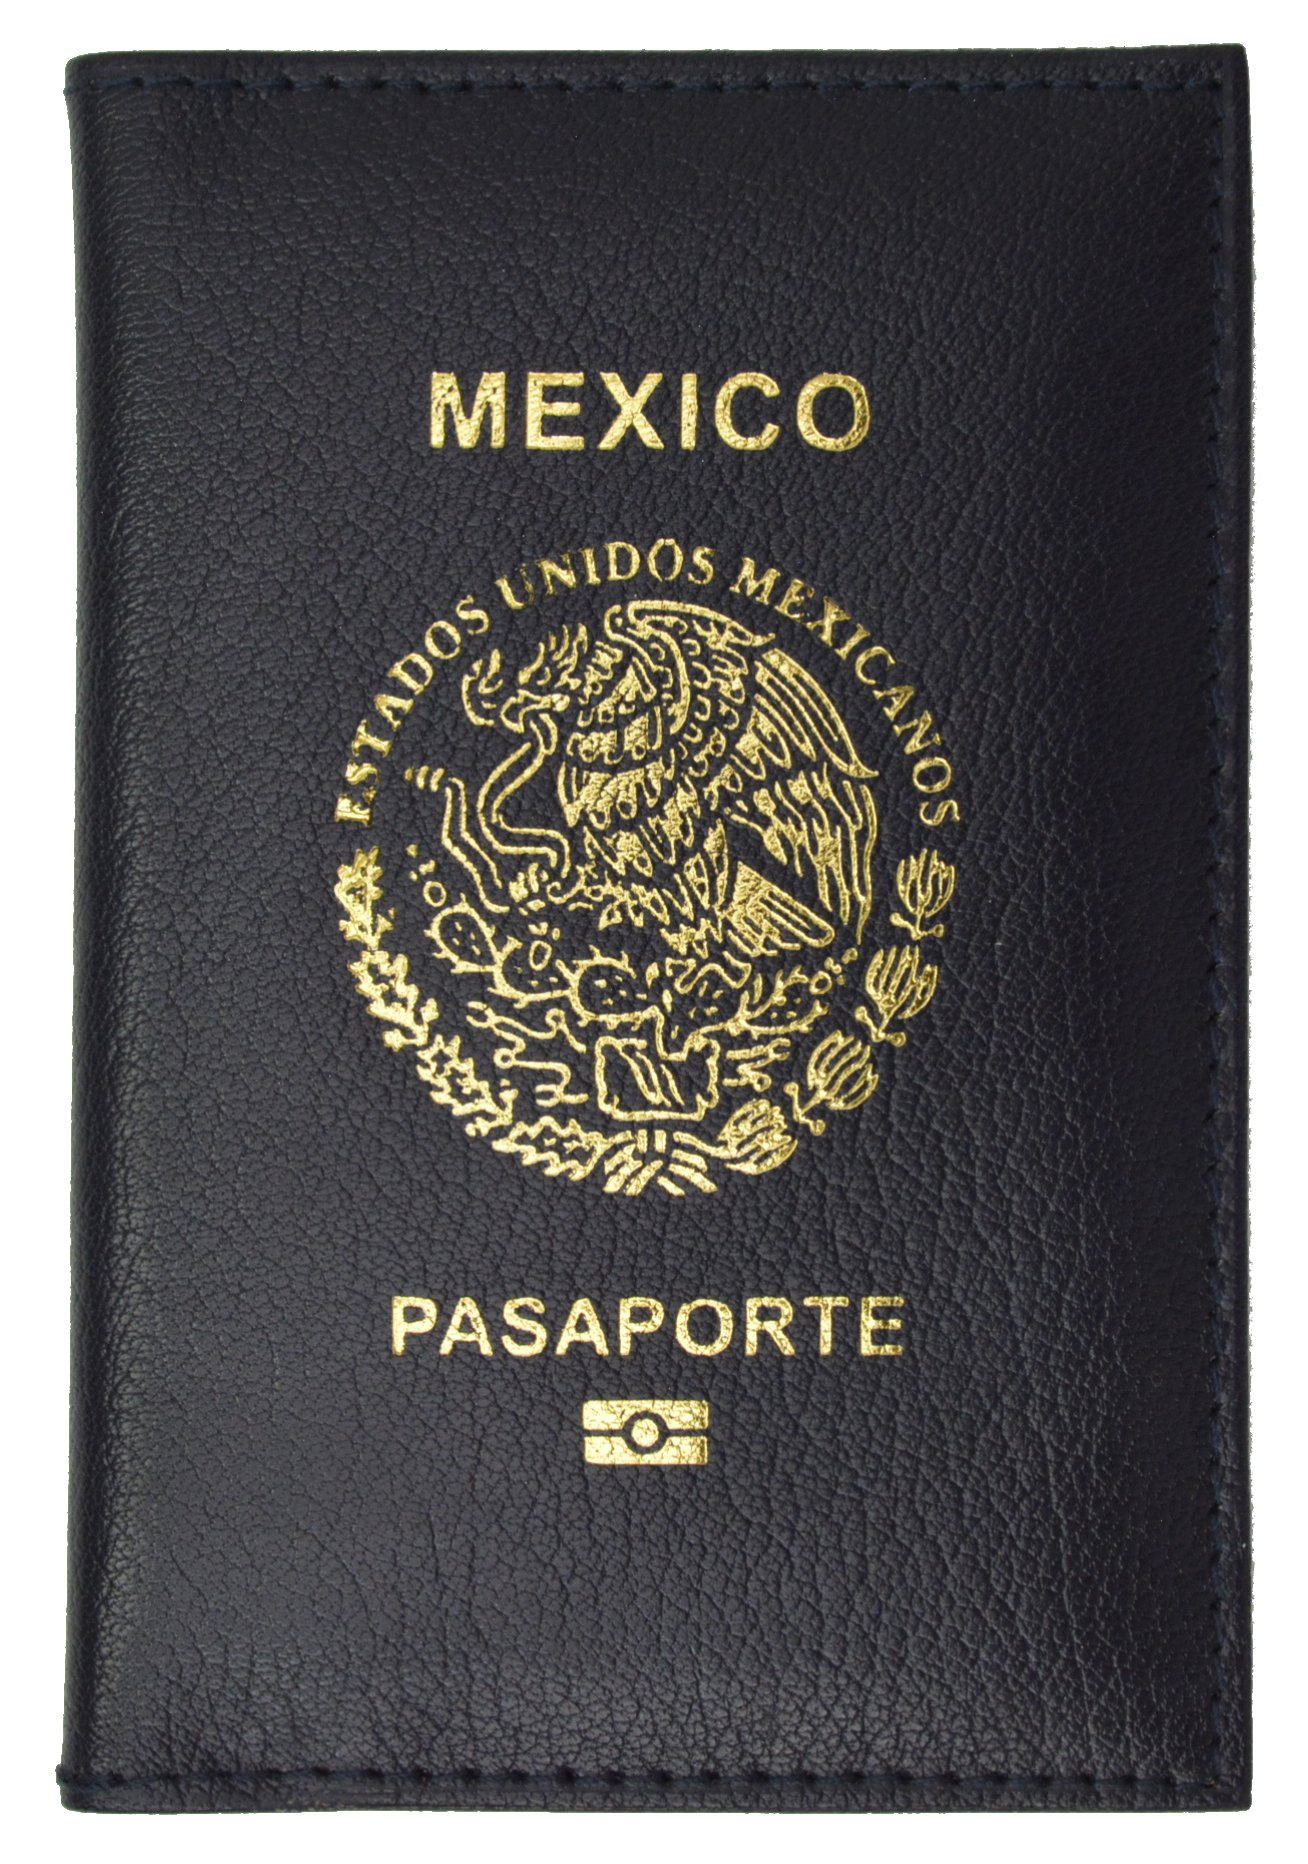 Mexico Passport Cover Genuine Leather Travel Wallet with Emblem Pasaporte (Blue)